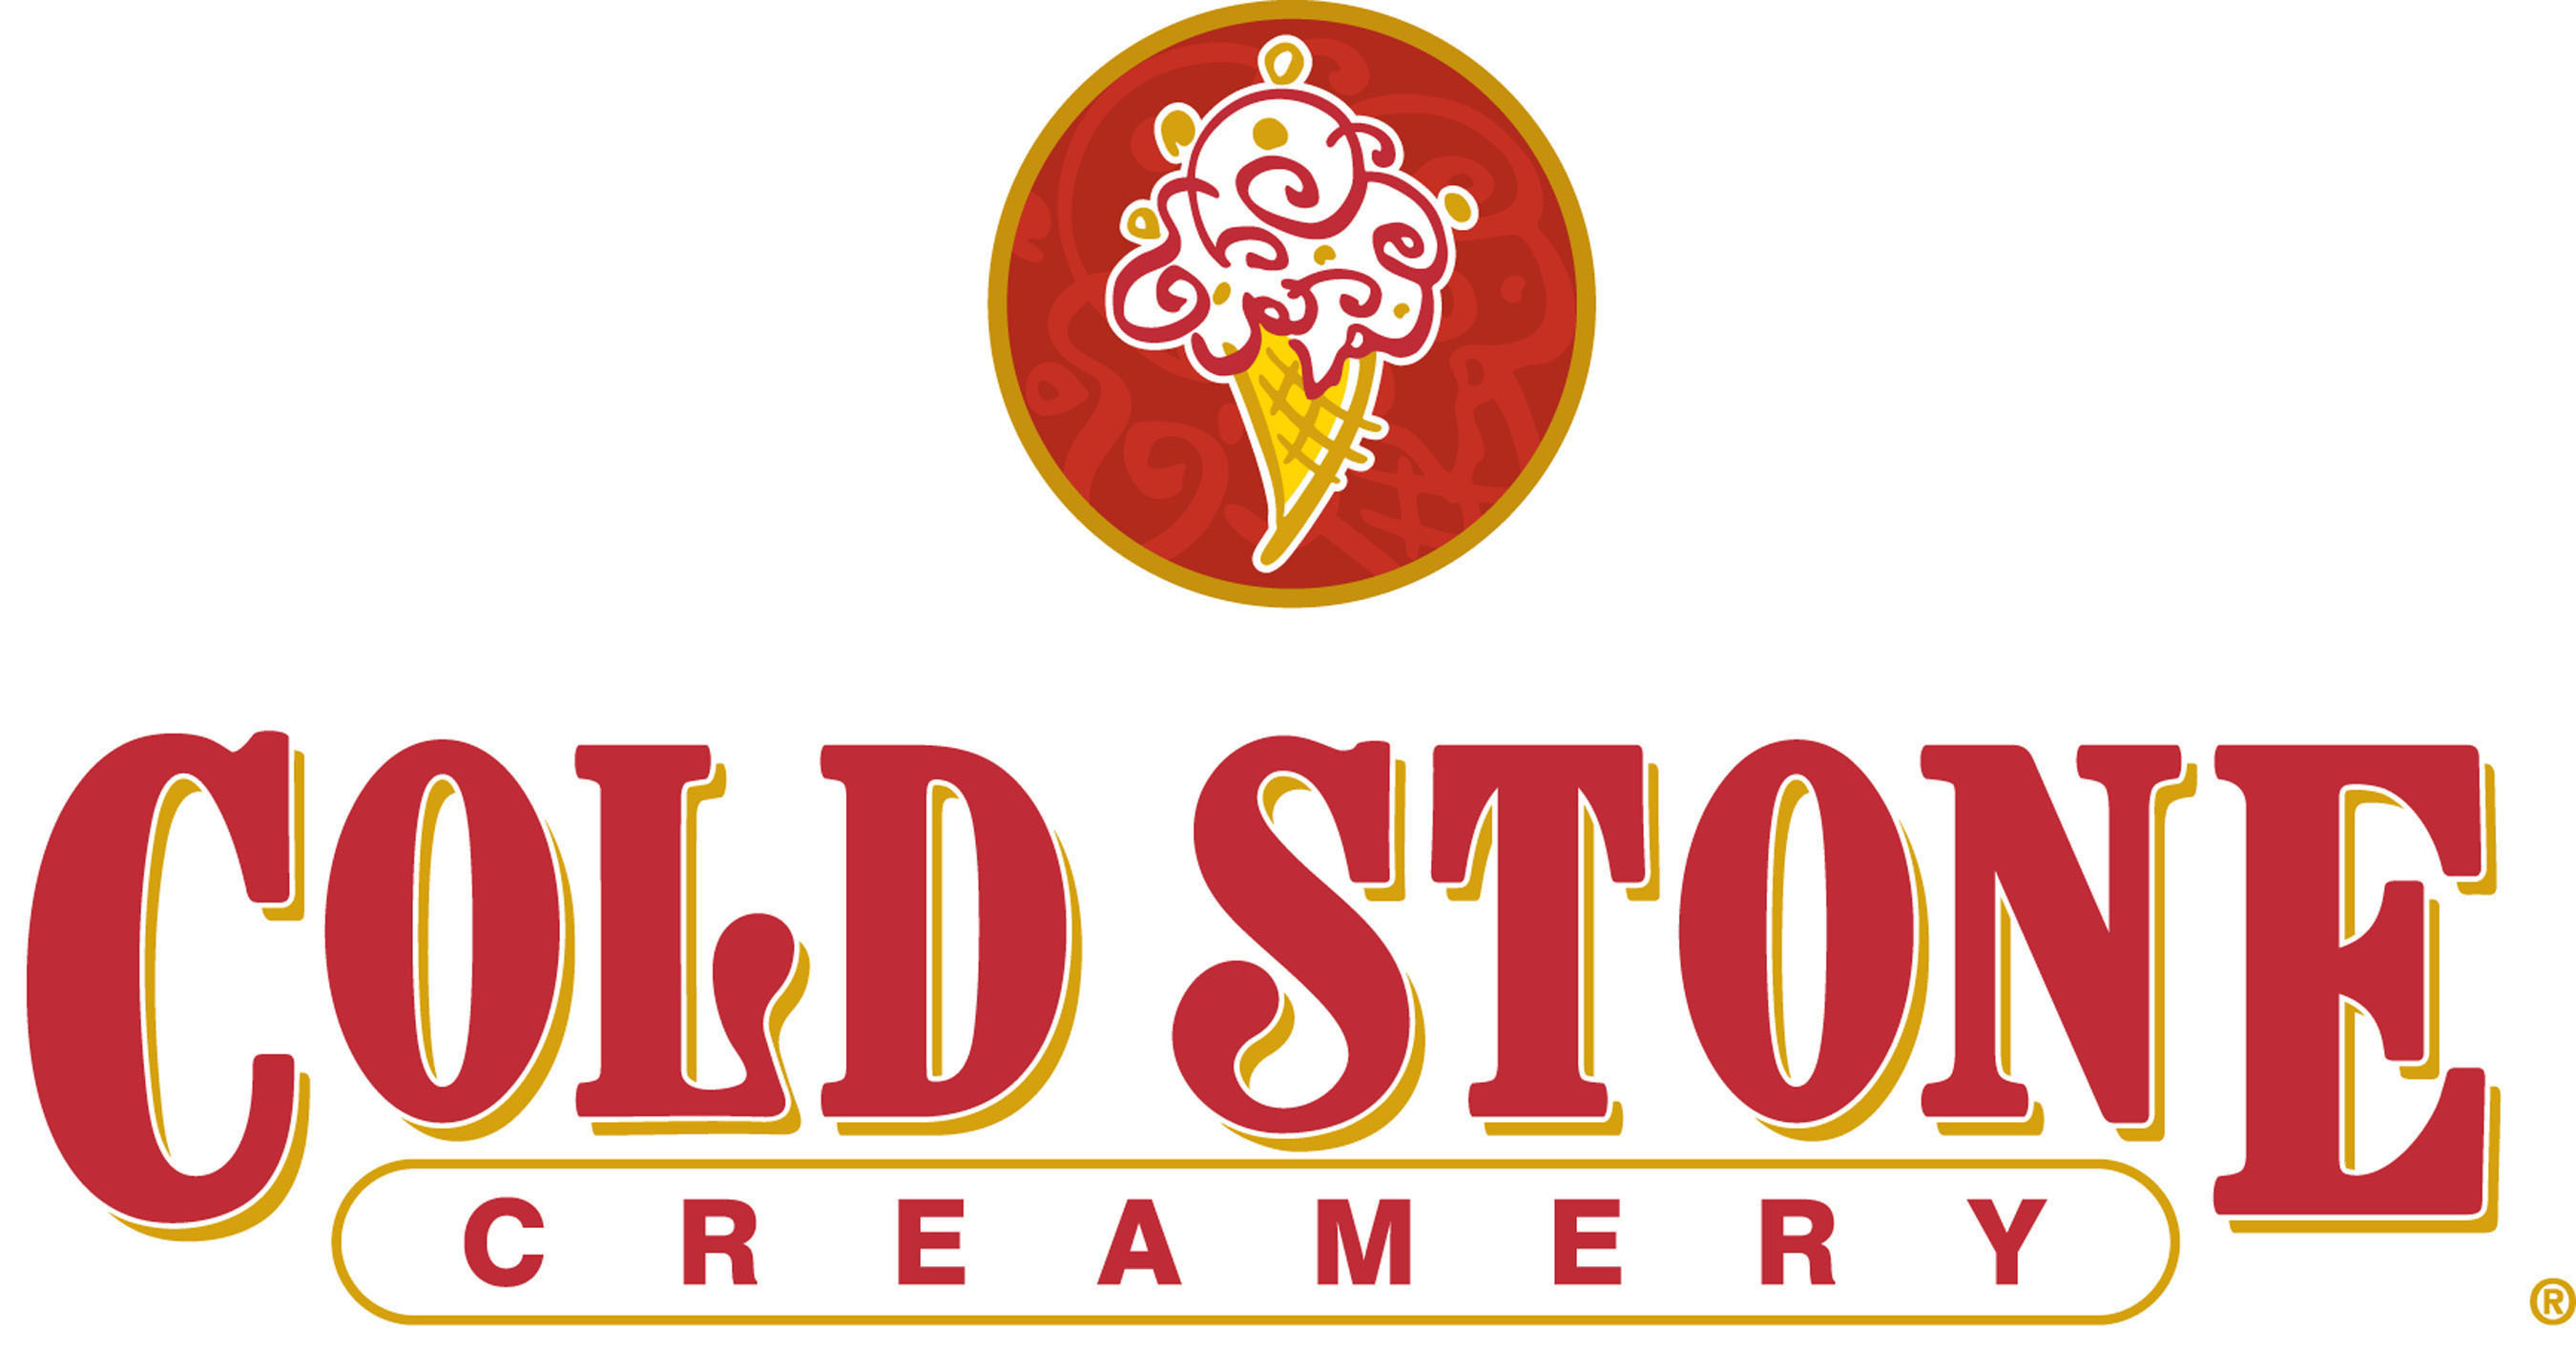 Cold Stone Creamery delivers The Ultimate Ice Cream Experience(r) through a community of franchisees who are ...